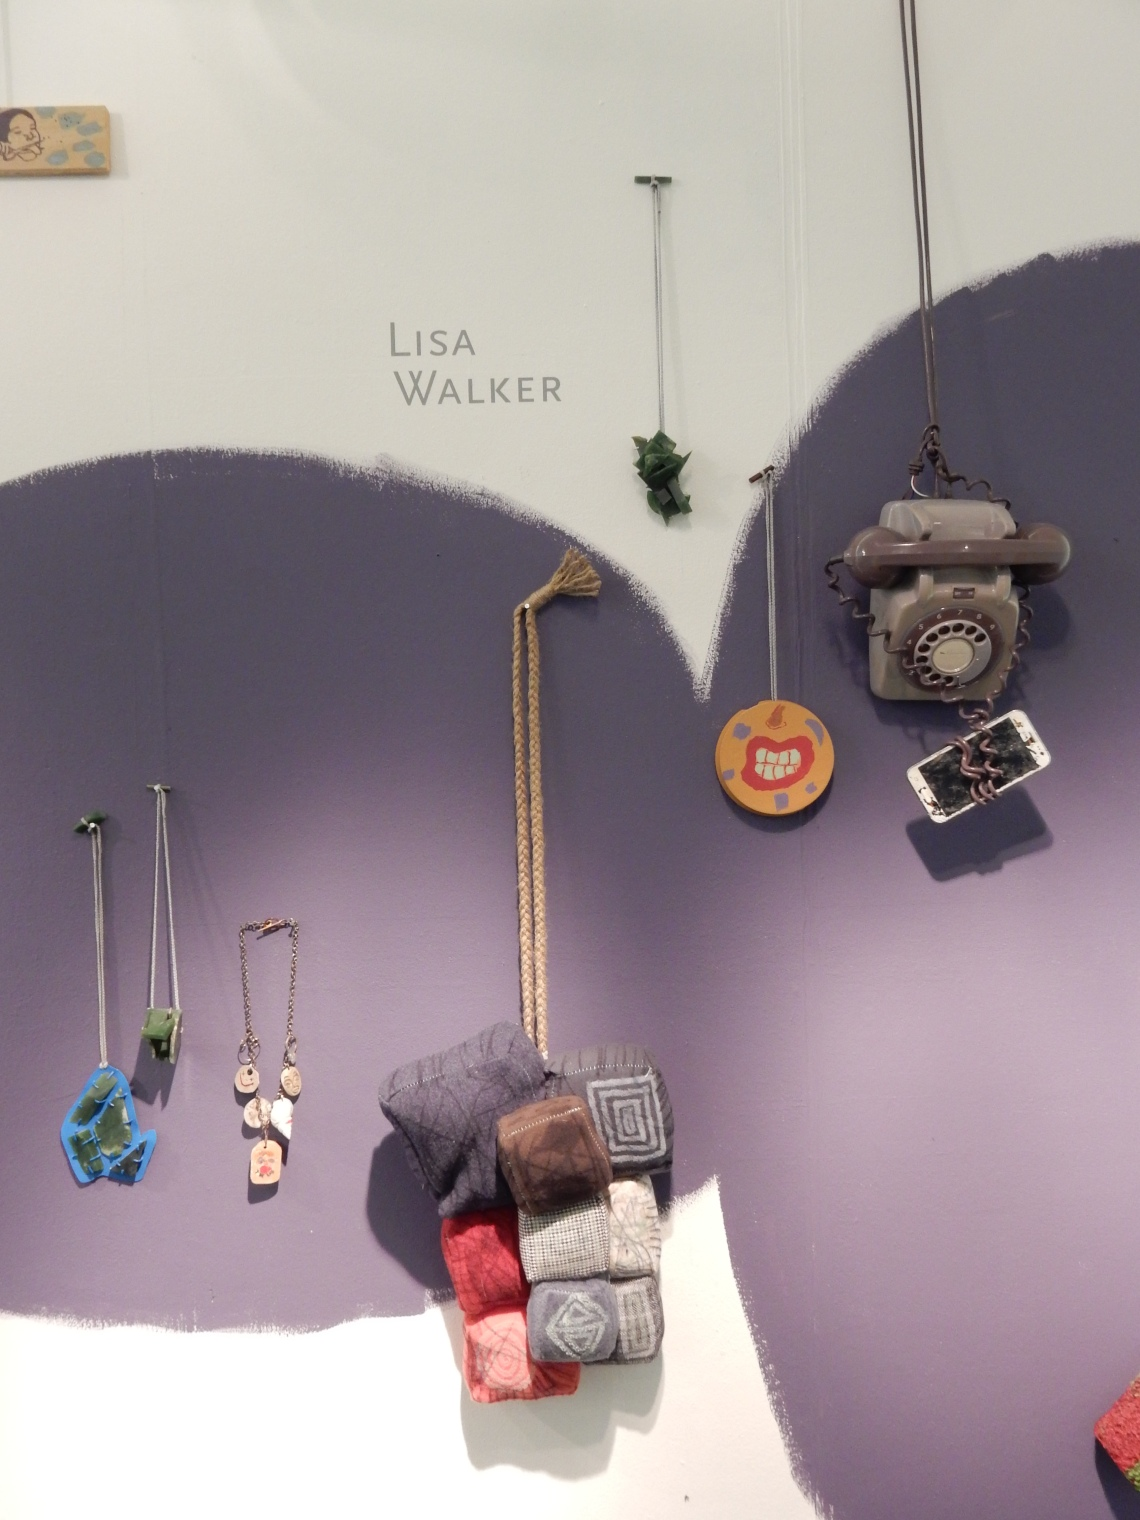 Lisa Walker in Galerie Ra. Foto Esther Doornbusch, december 2018©